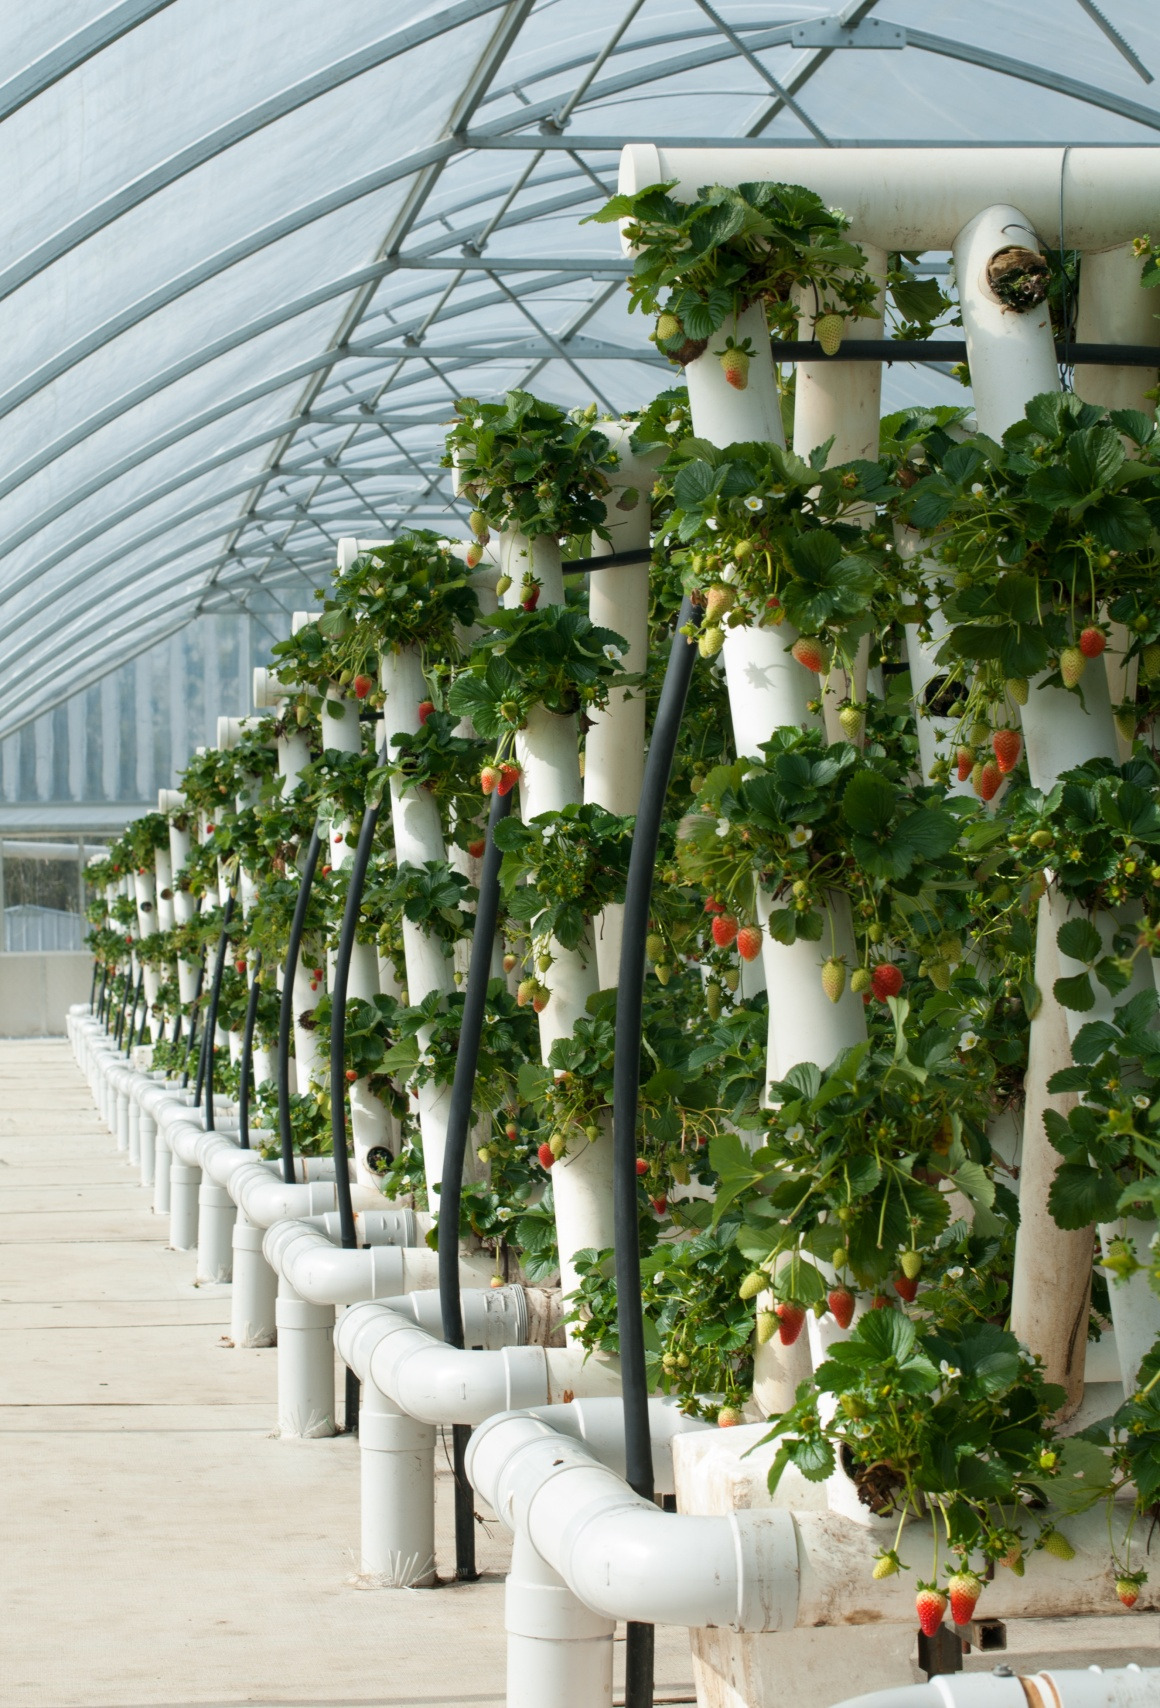 A greenhouse with vertical rails on which plants grow...